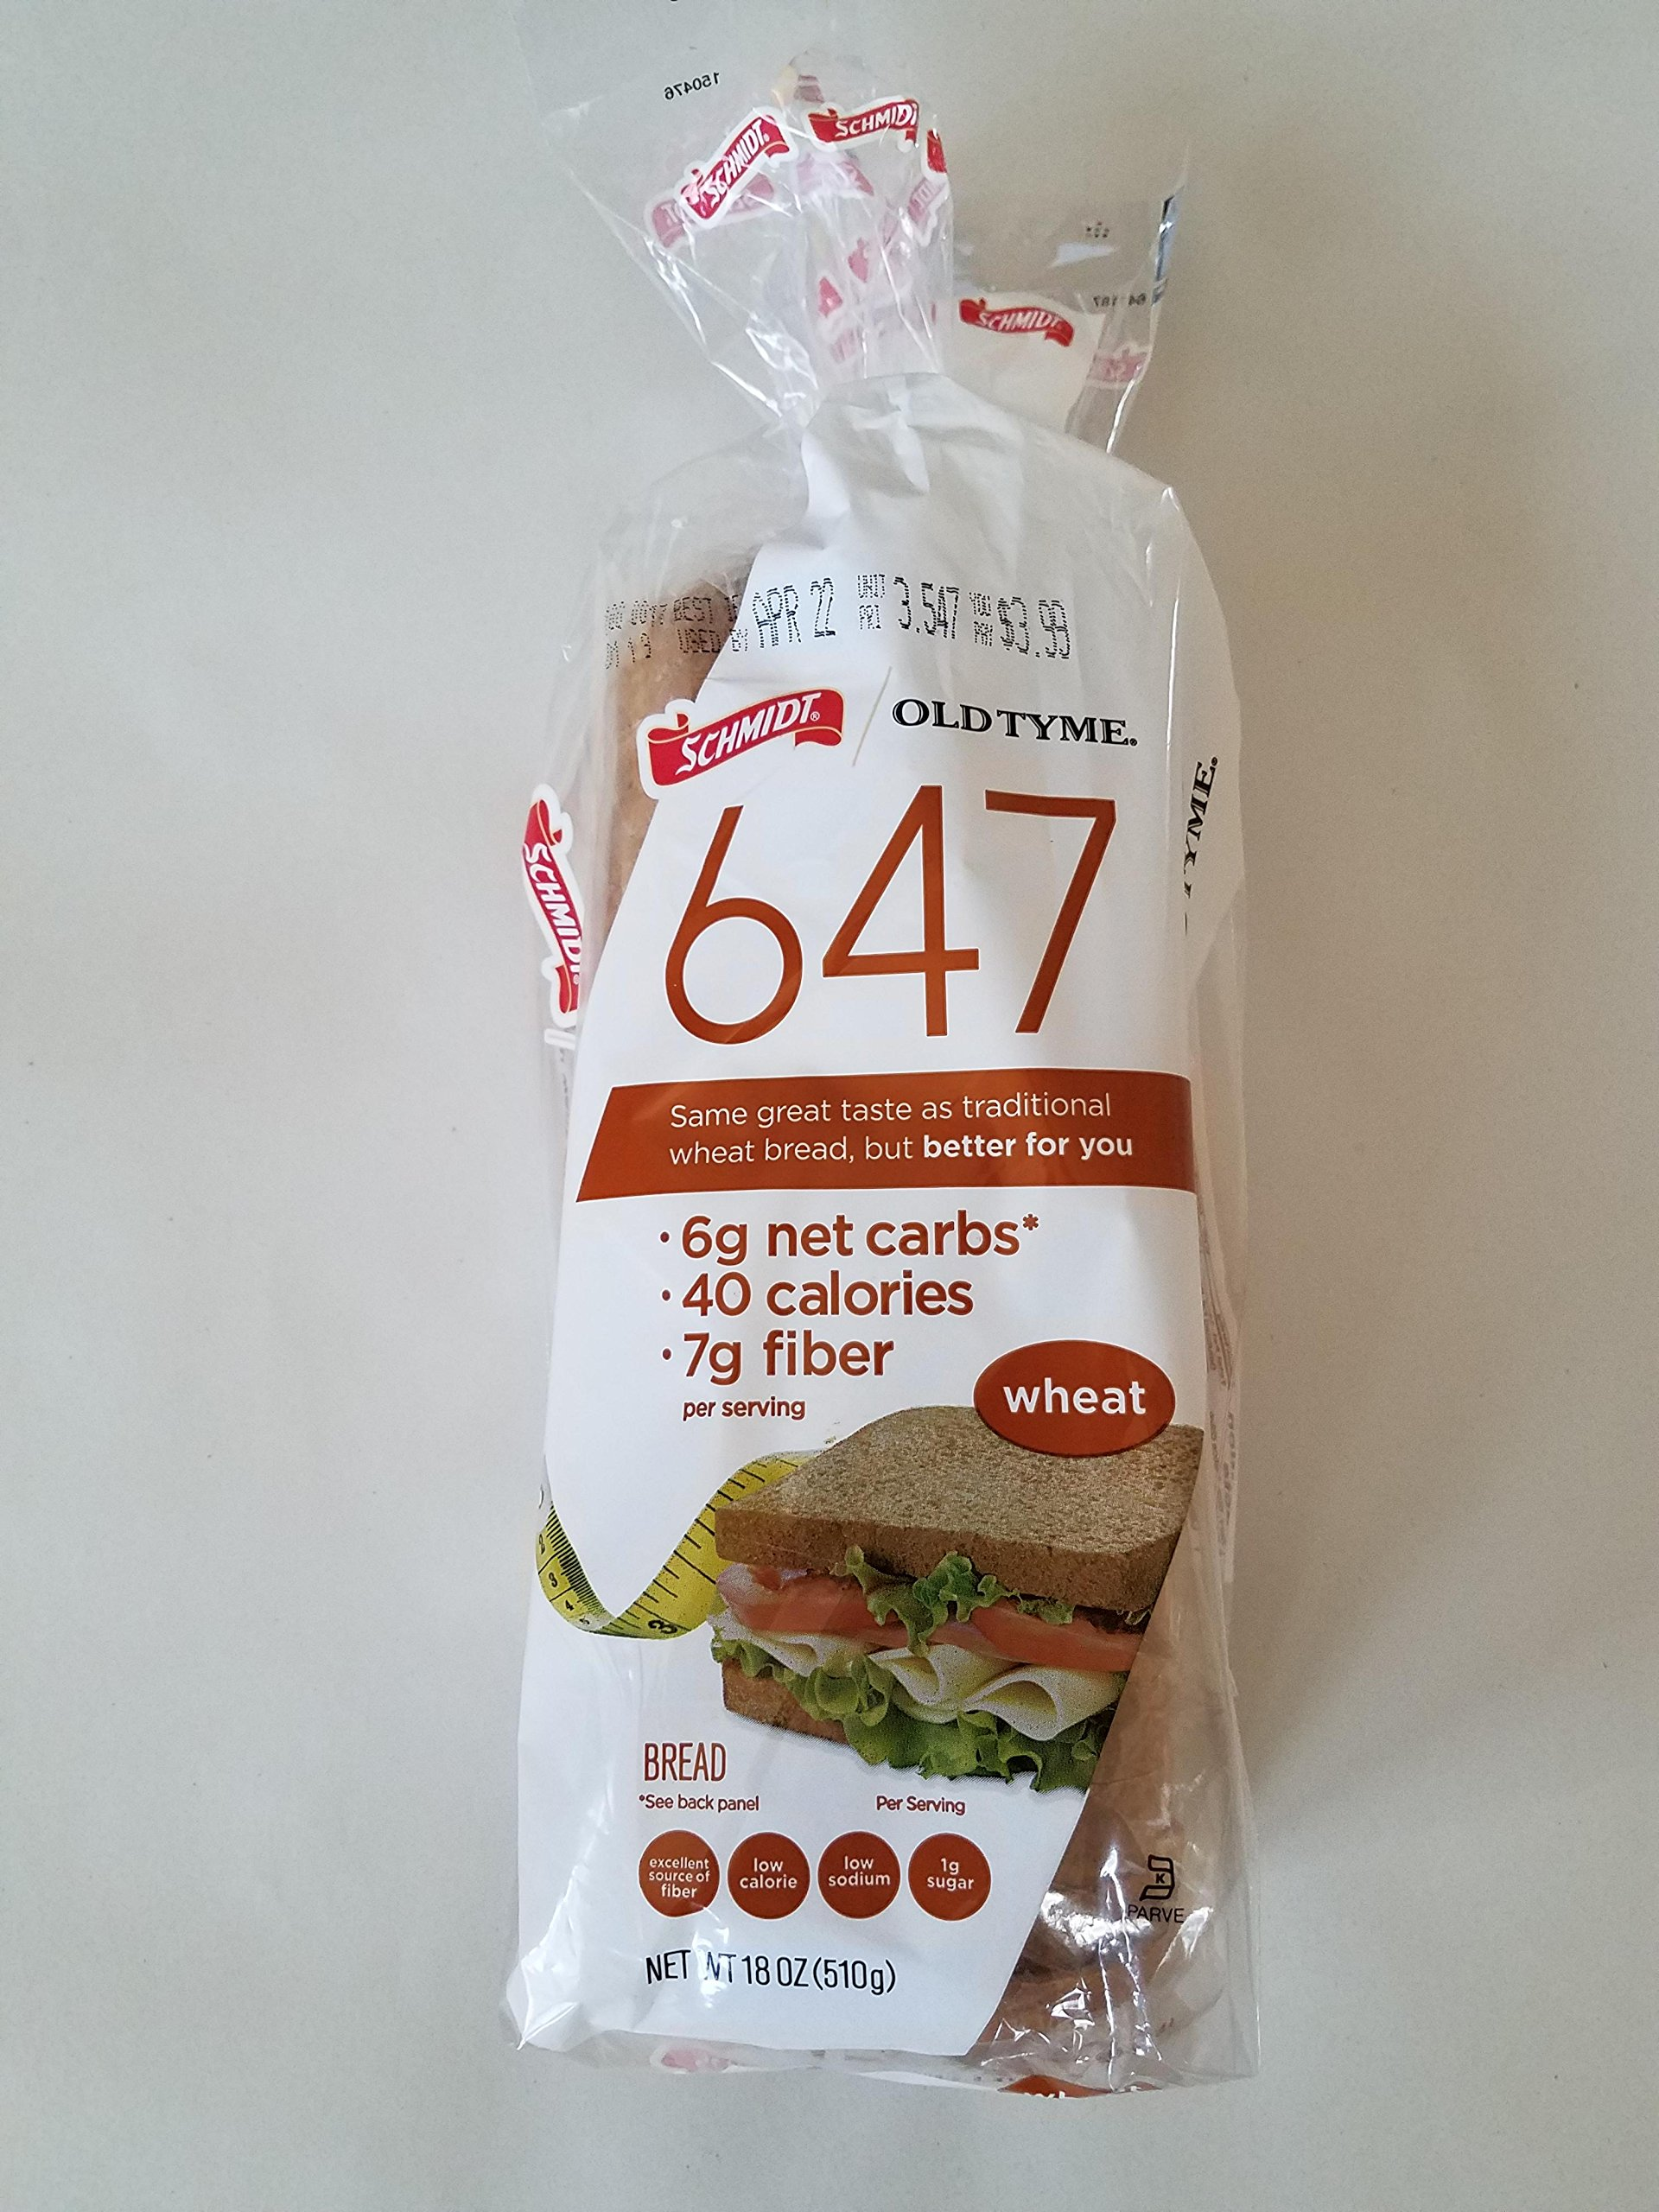 Schmidt Old Tyme 647 Bread - Whole Wheat: Amazon.com: Grocery & Gourmet Food